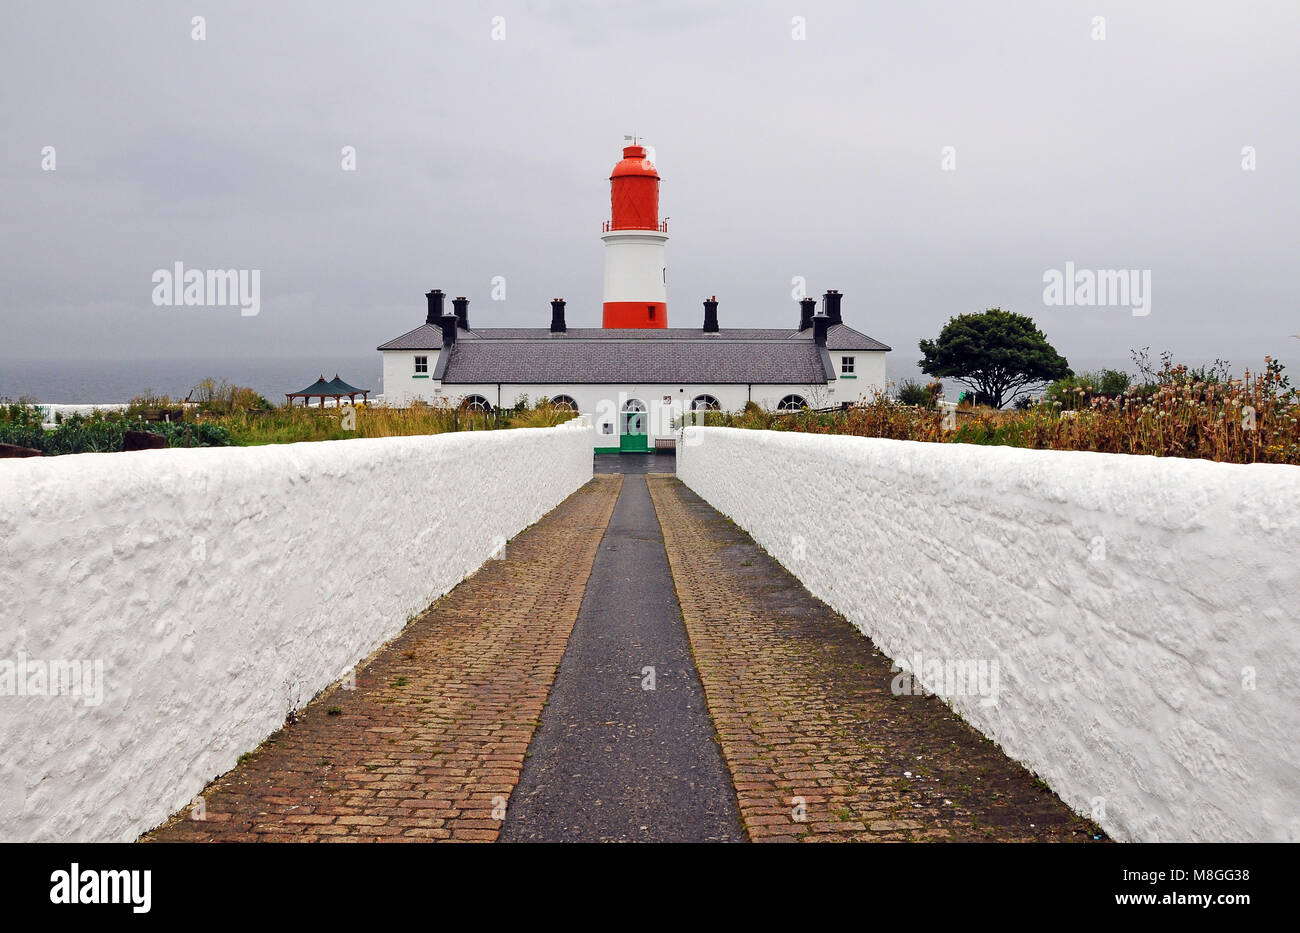 Souter Lighthouse (grid reference NZ408642) is a lighthouse located in the village of Marsden in South Shields, - Stock Image